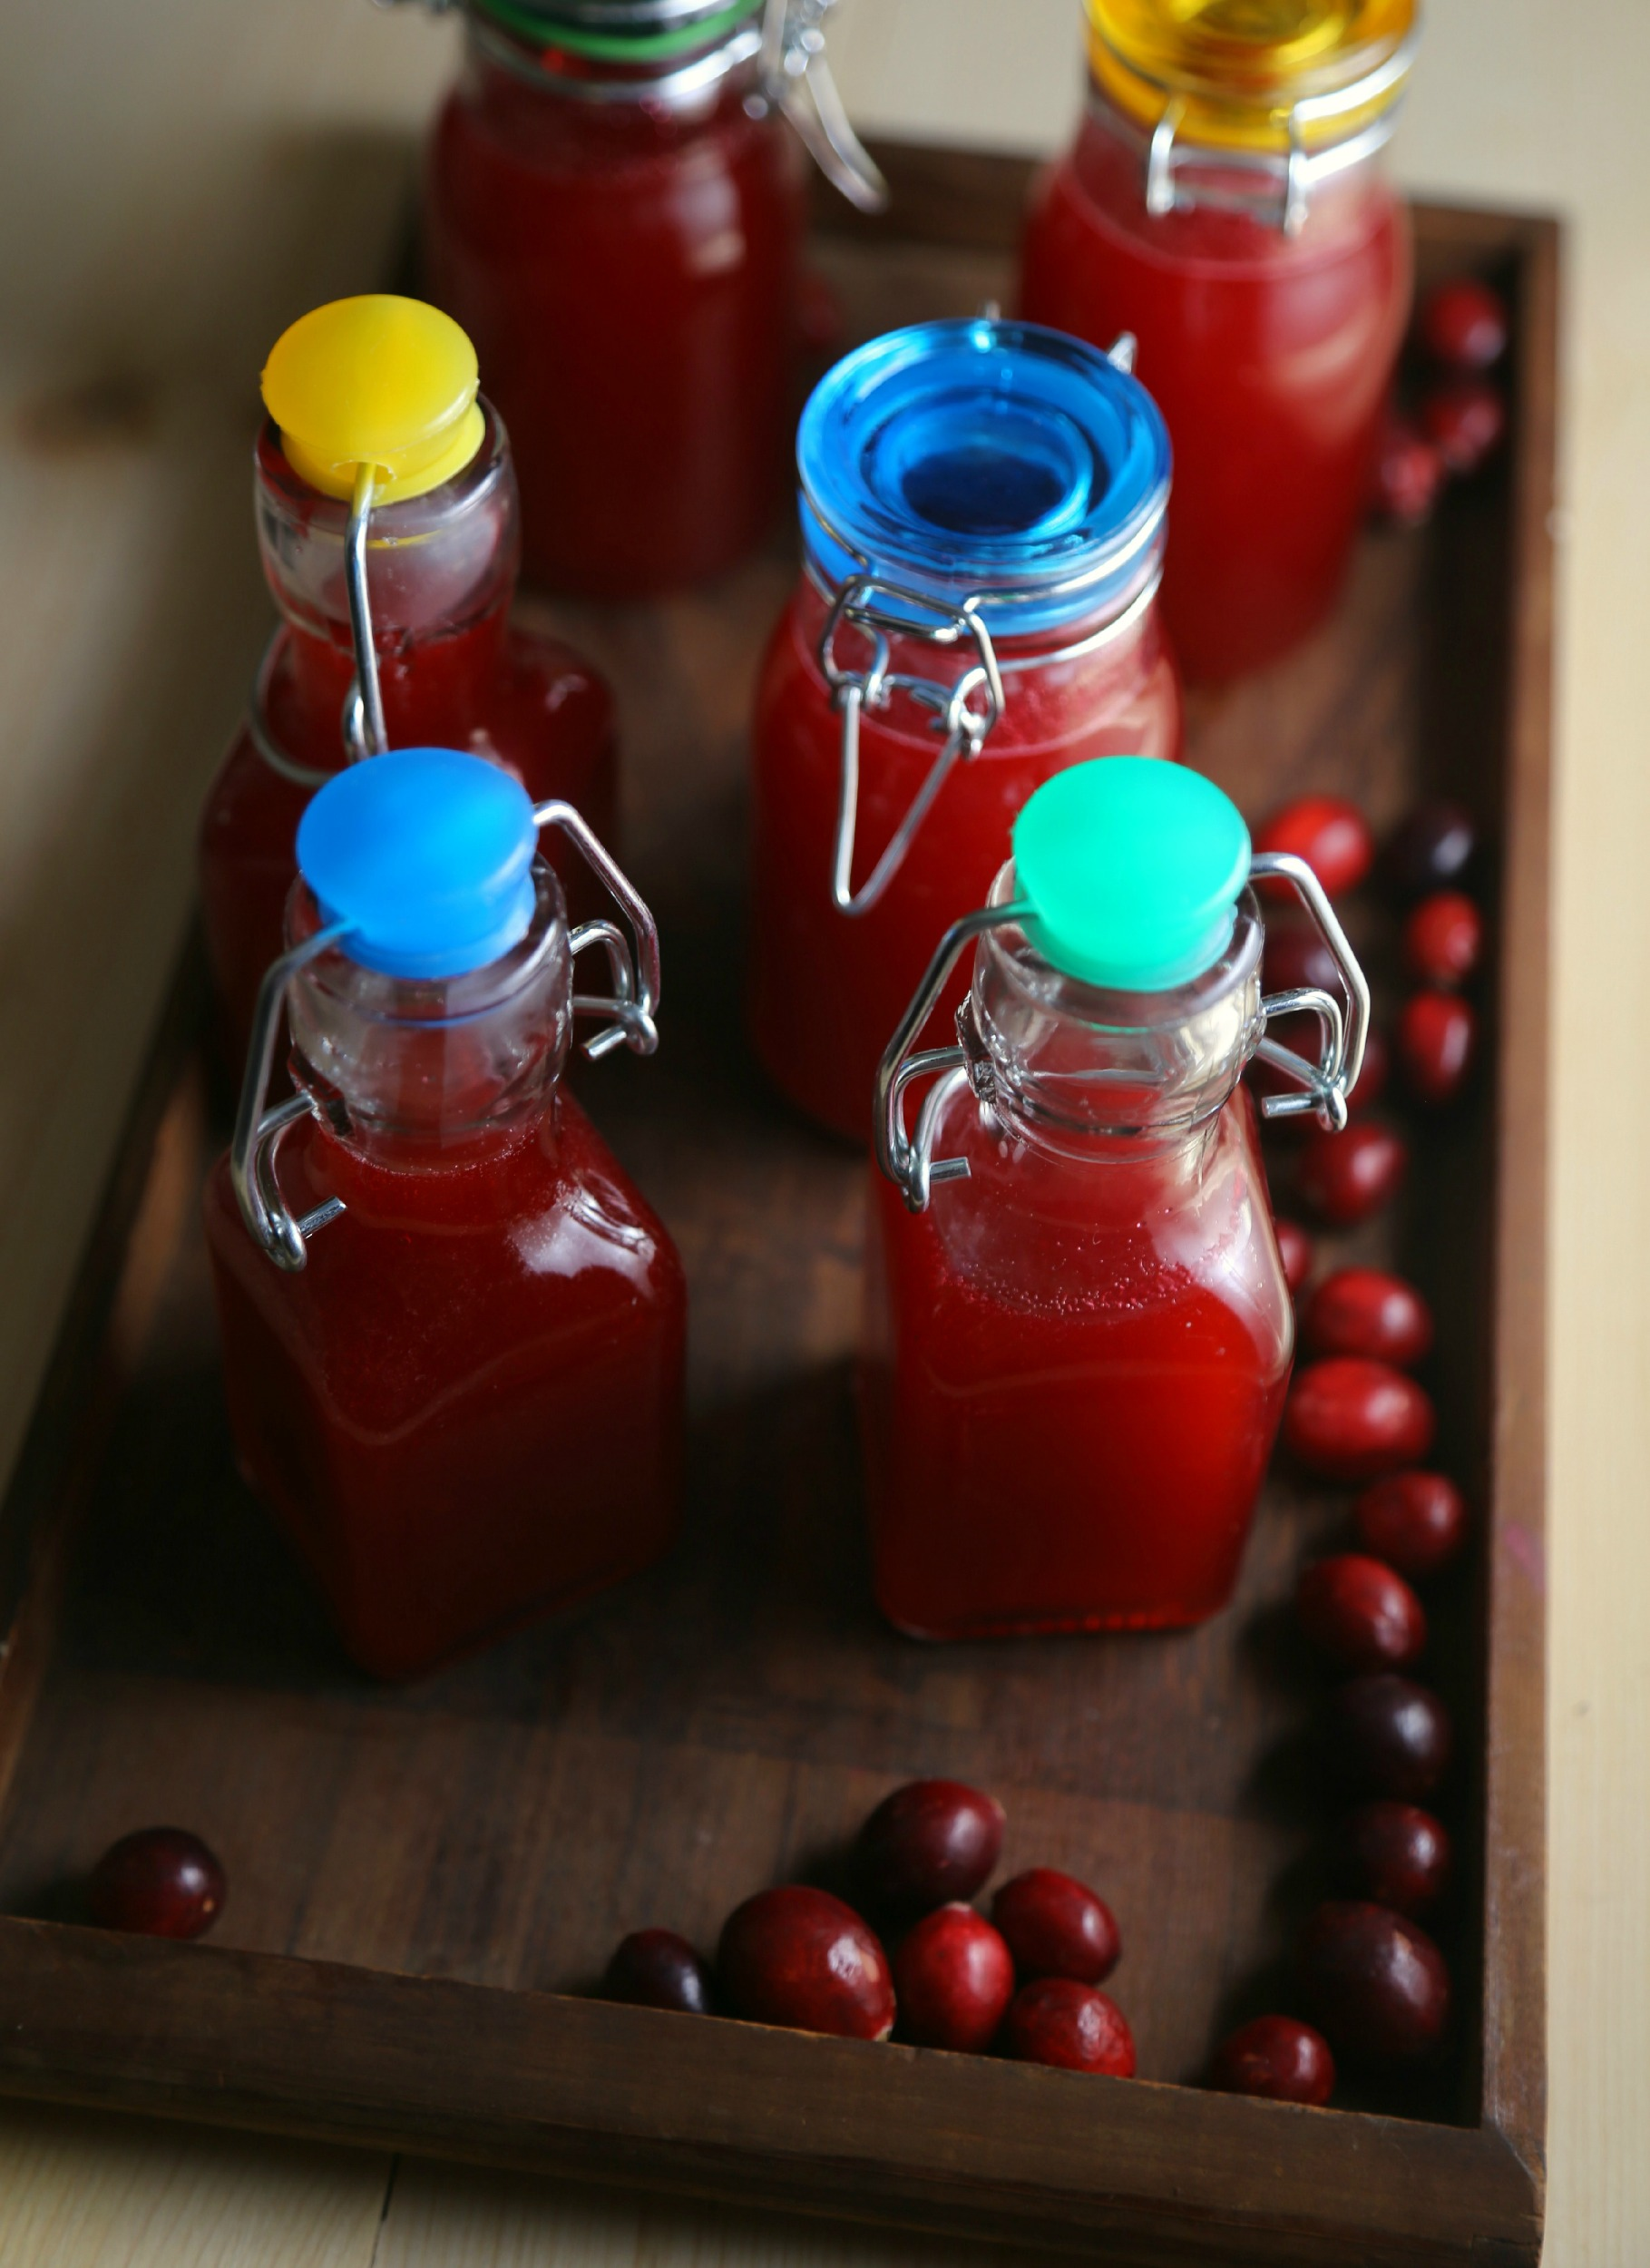 infused-cranberry-vodka-holiday-gift-vianneyrodriguez-sweetlifebake